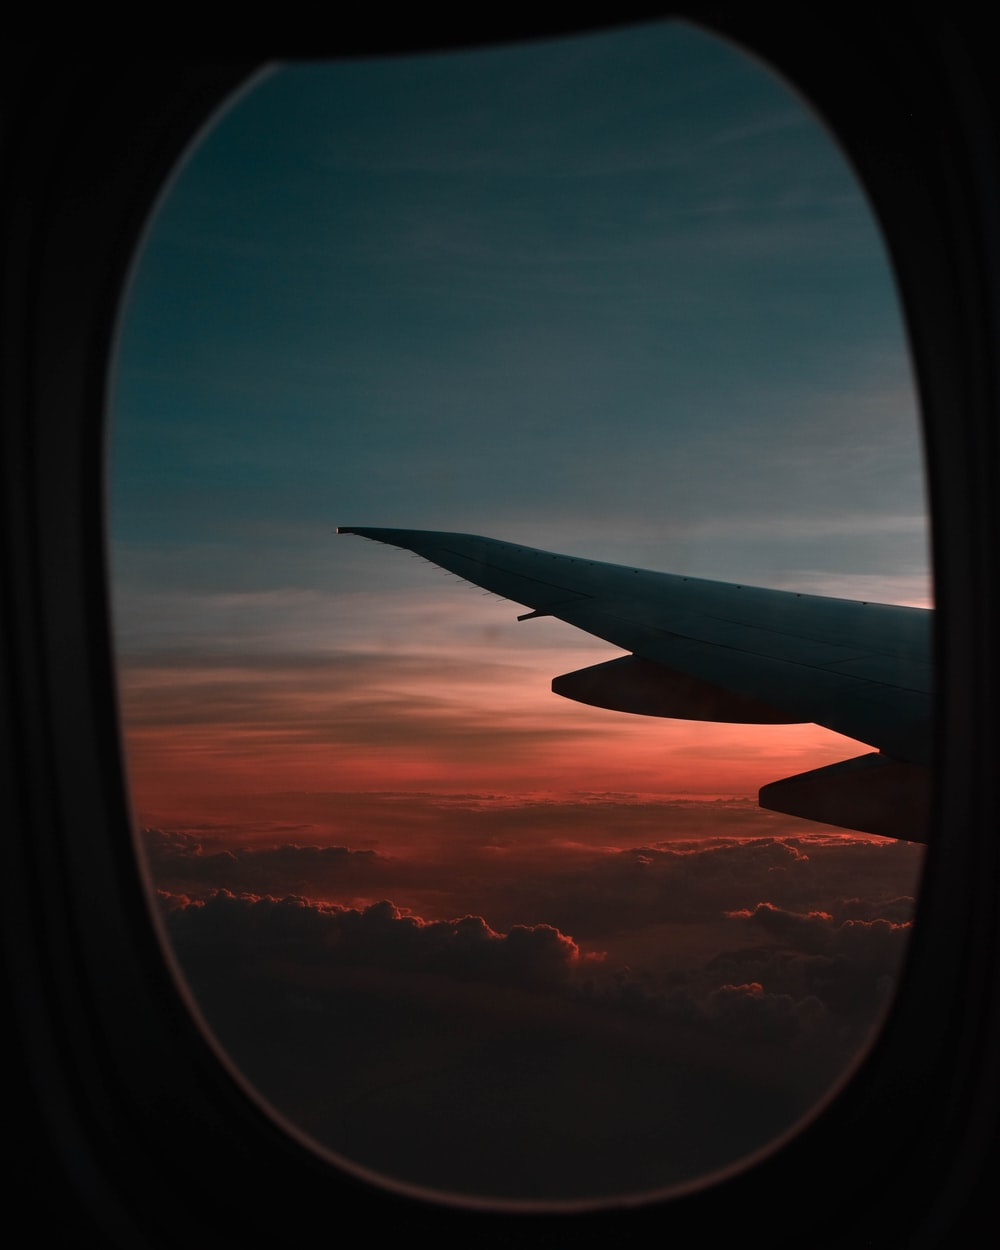 Best 20 Airplane Pictures Hd Download Free Images On Unsplash Ladaku 4g Window View Of During Golden Hour